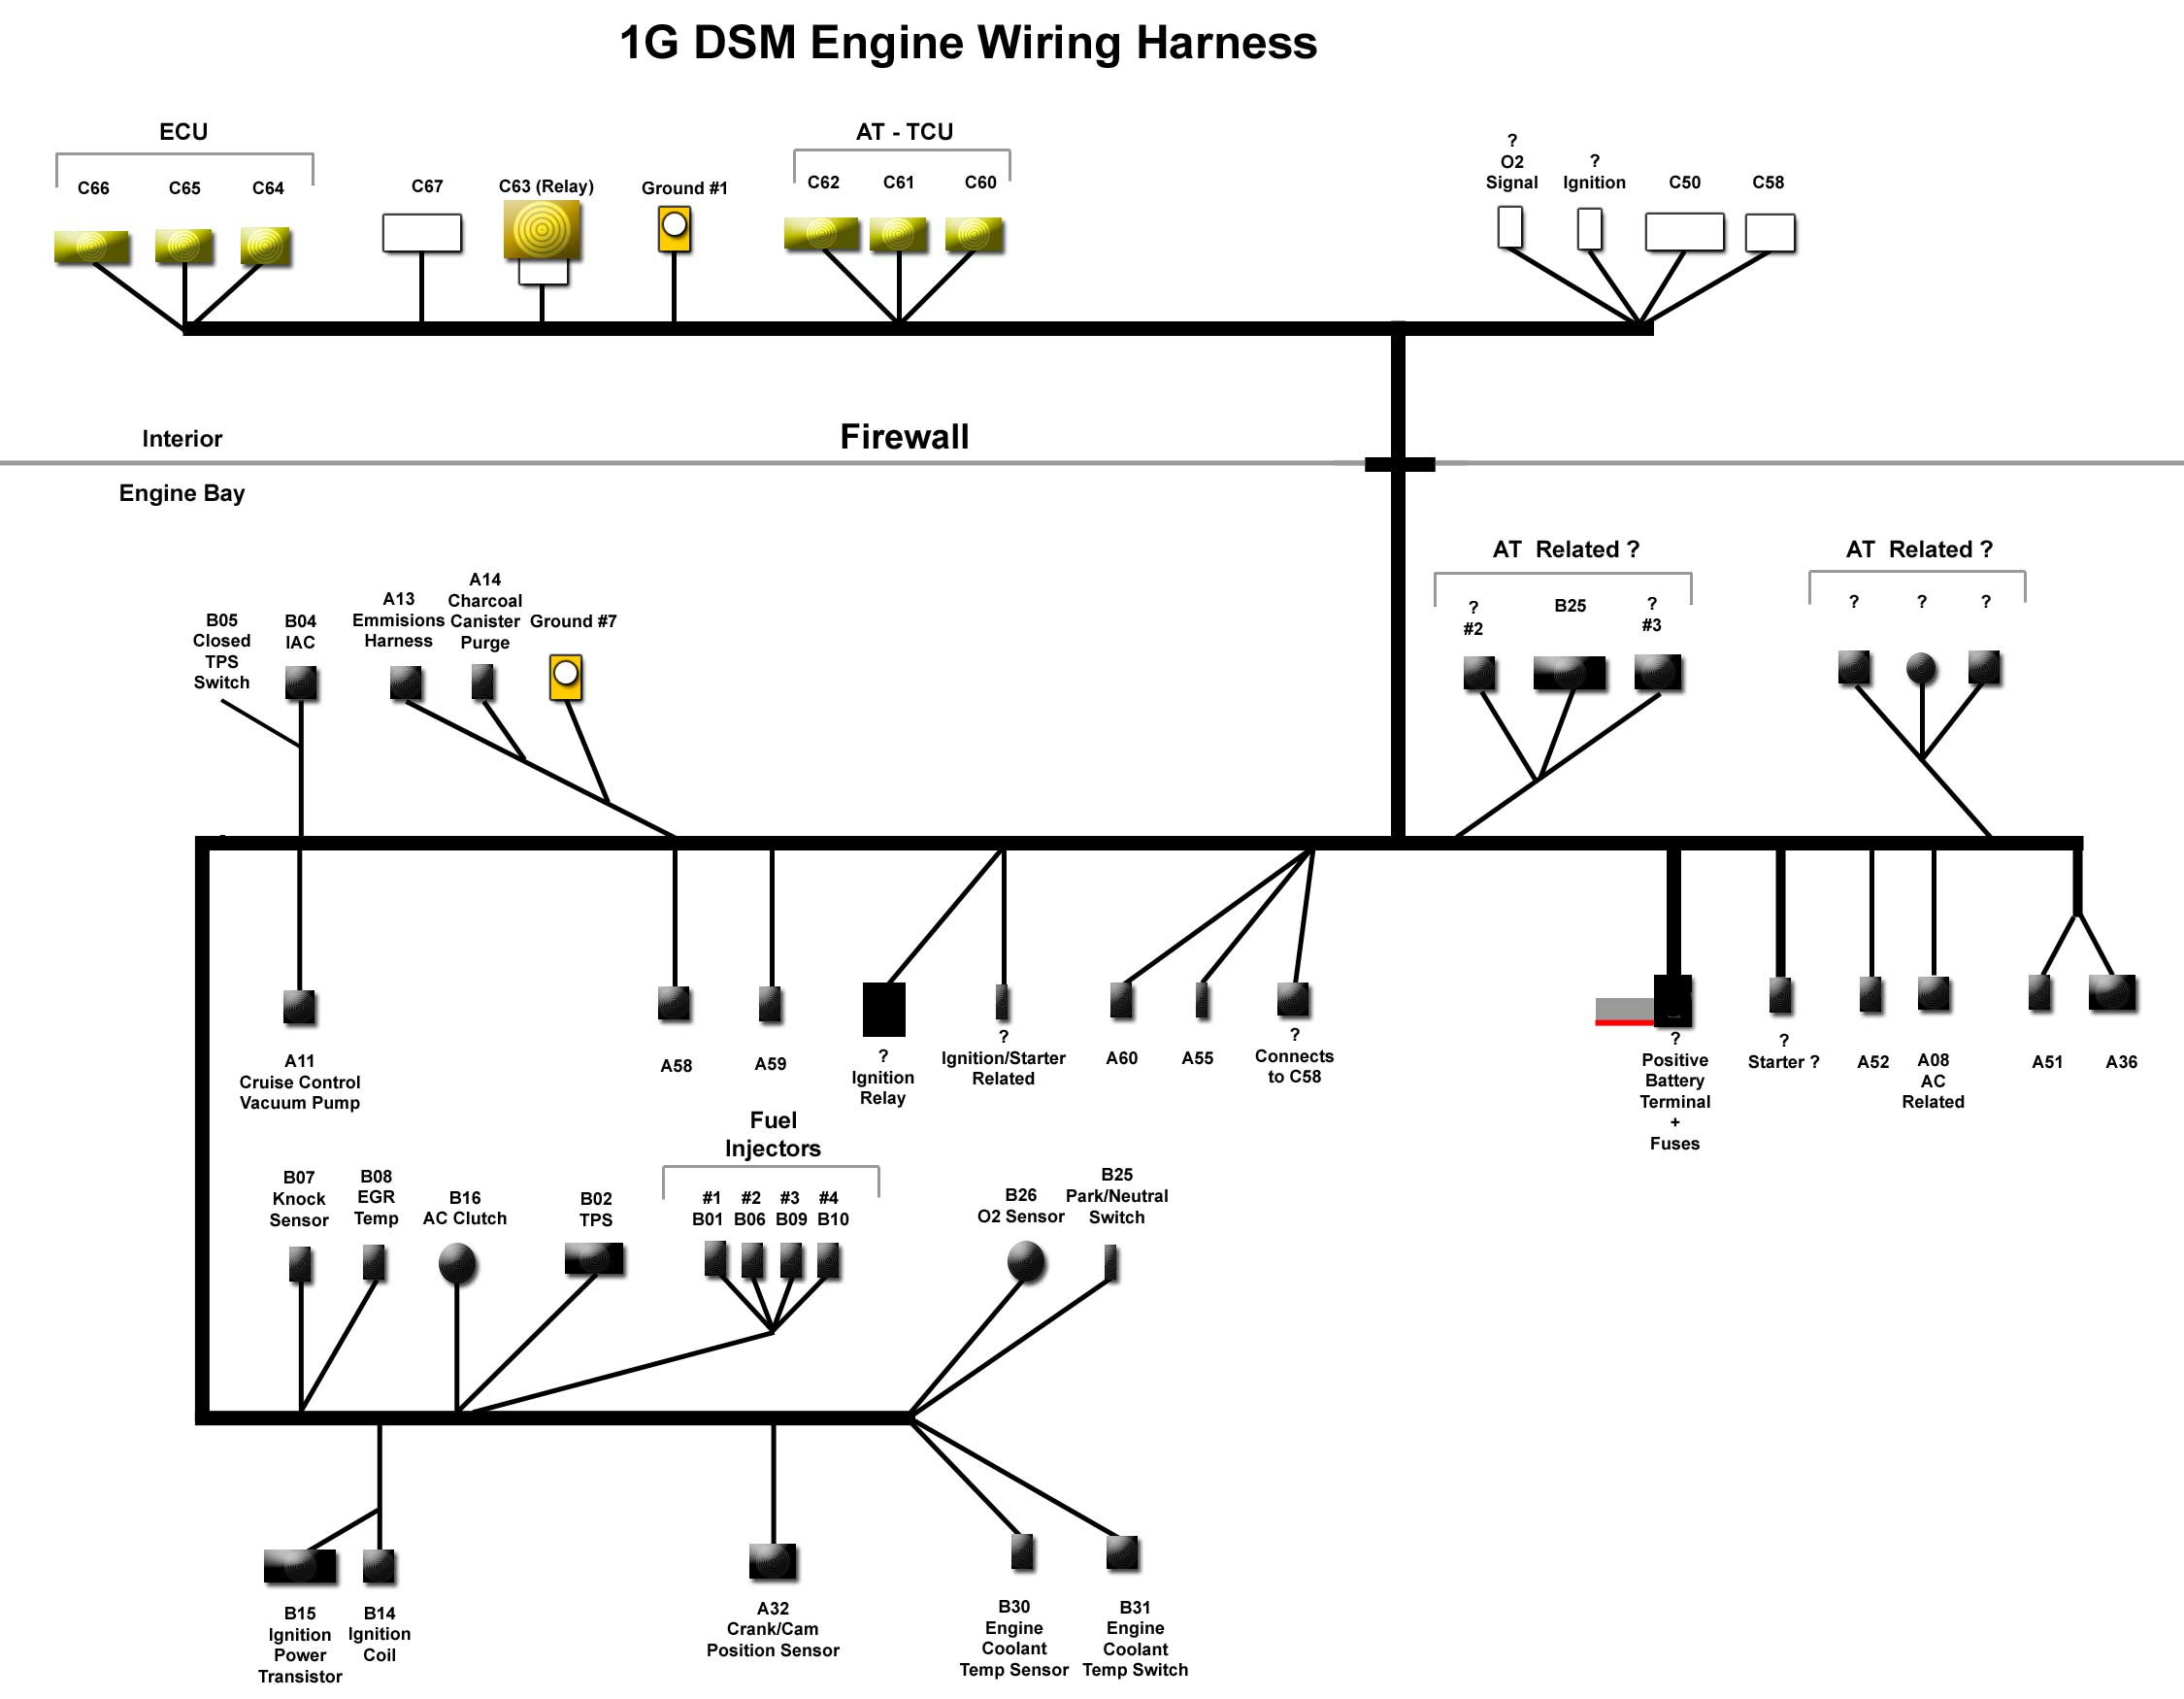 1G DSM EngineHarness diagrams 768576 vw alternator wiring diagram alternator wiring  at sewacar.co